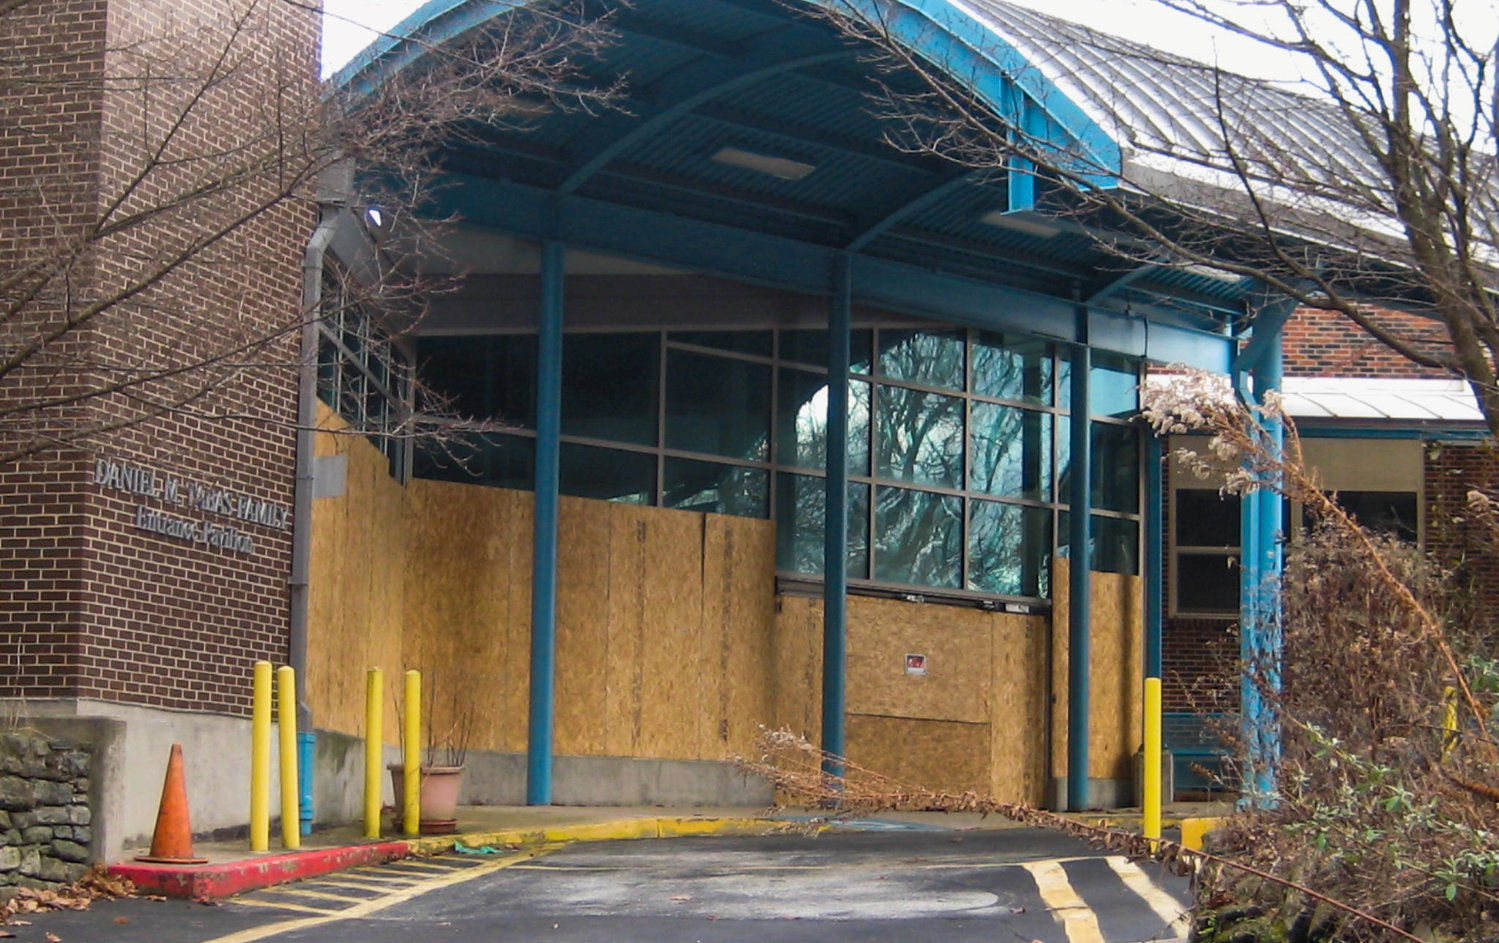 By Thursday, January 7, the Goldenberg Group had responded with a sitewide cleanup and on-site security. Those measures included sealing broken glass at the building's front entrance.